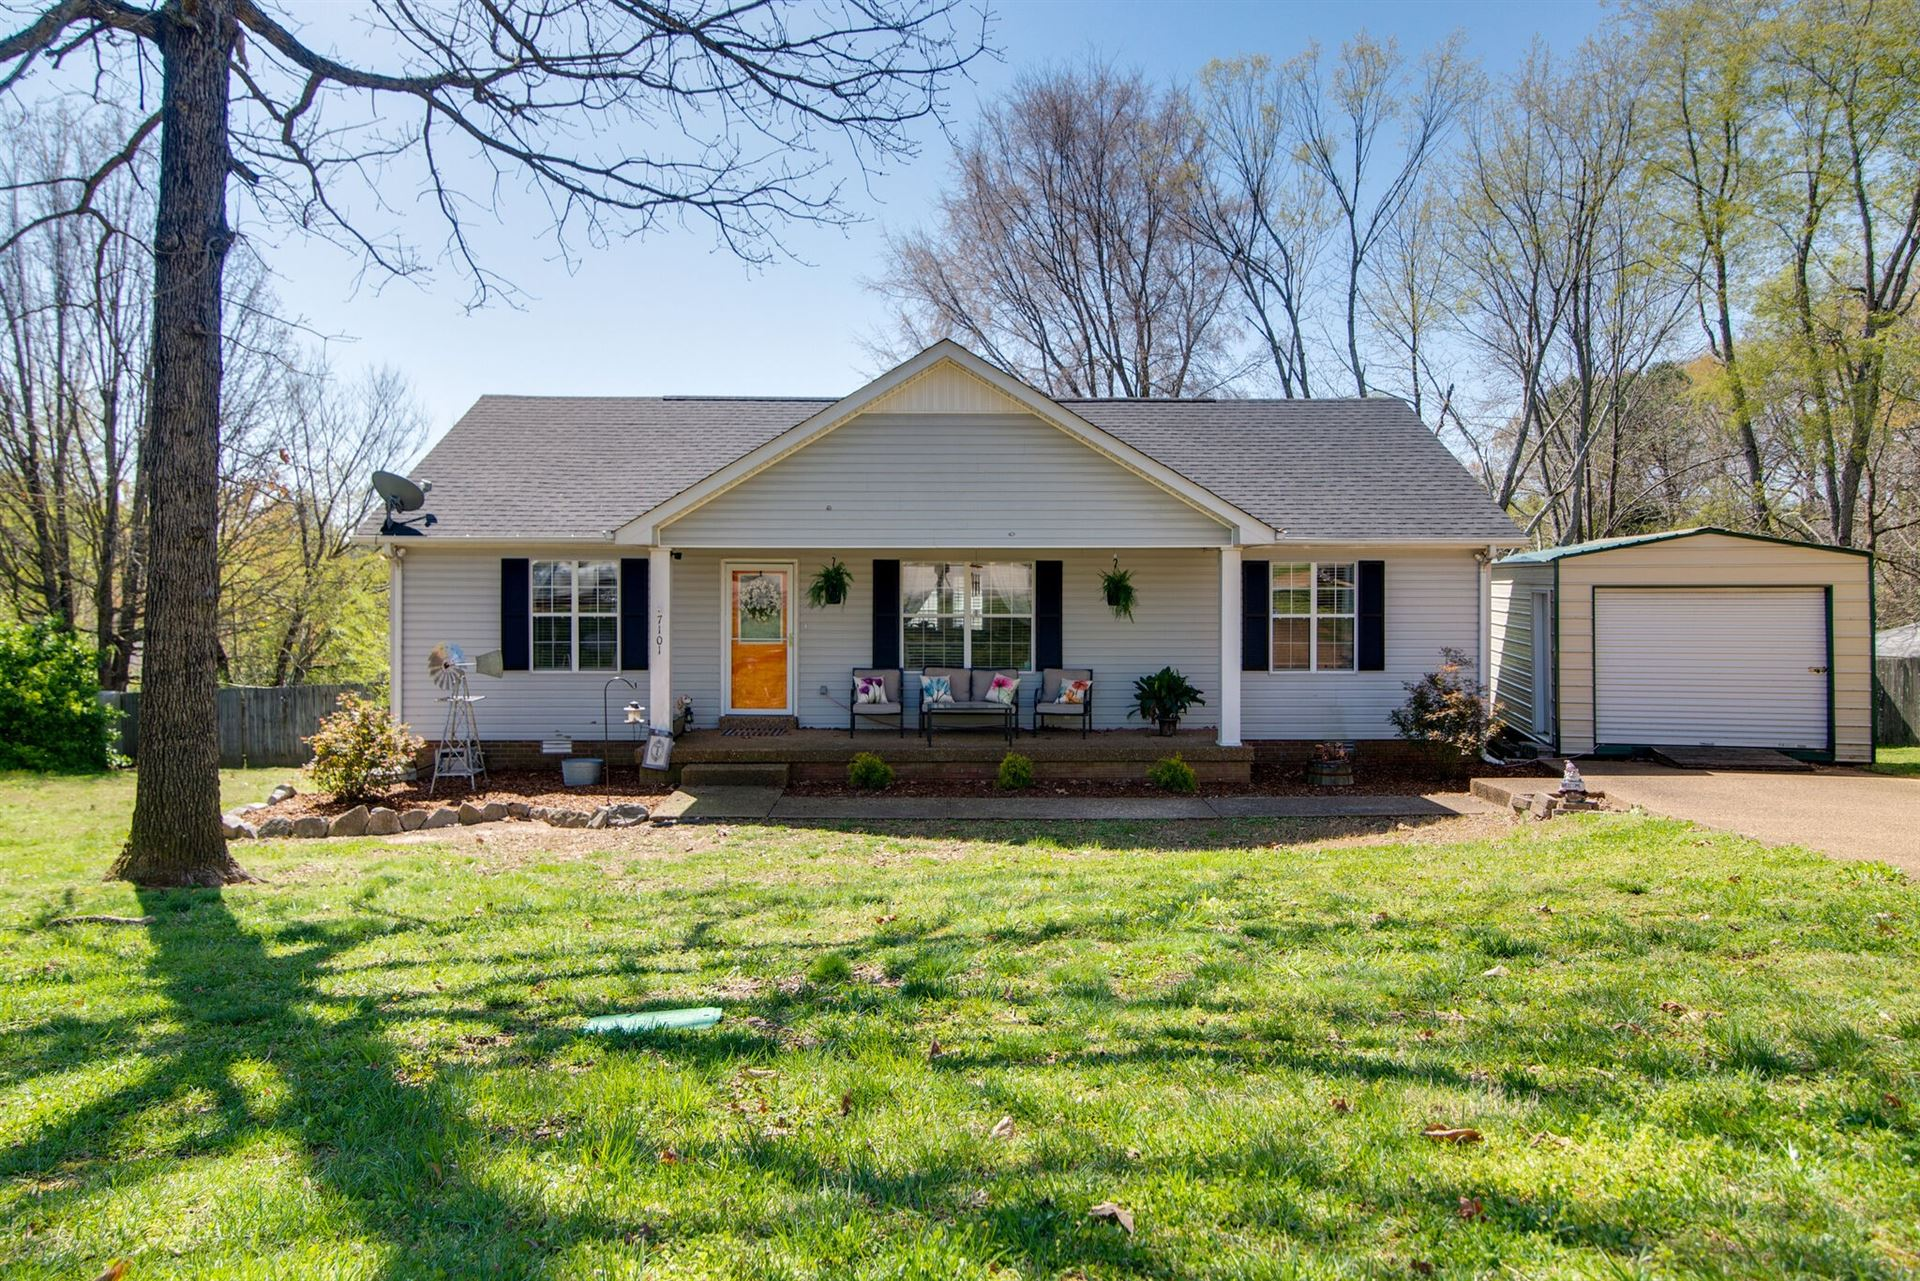 Photo of 7101 Catherine Dr, Fairview, TN 37062 (MLS # 2243539)